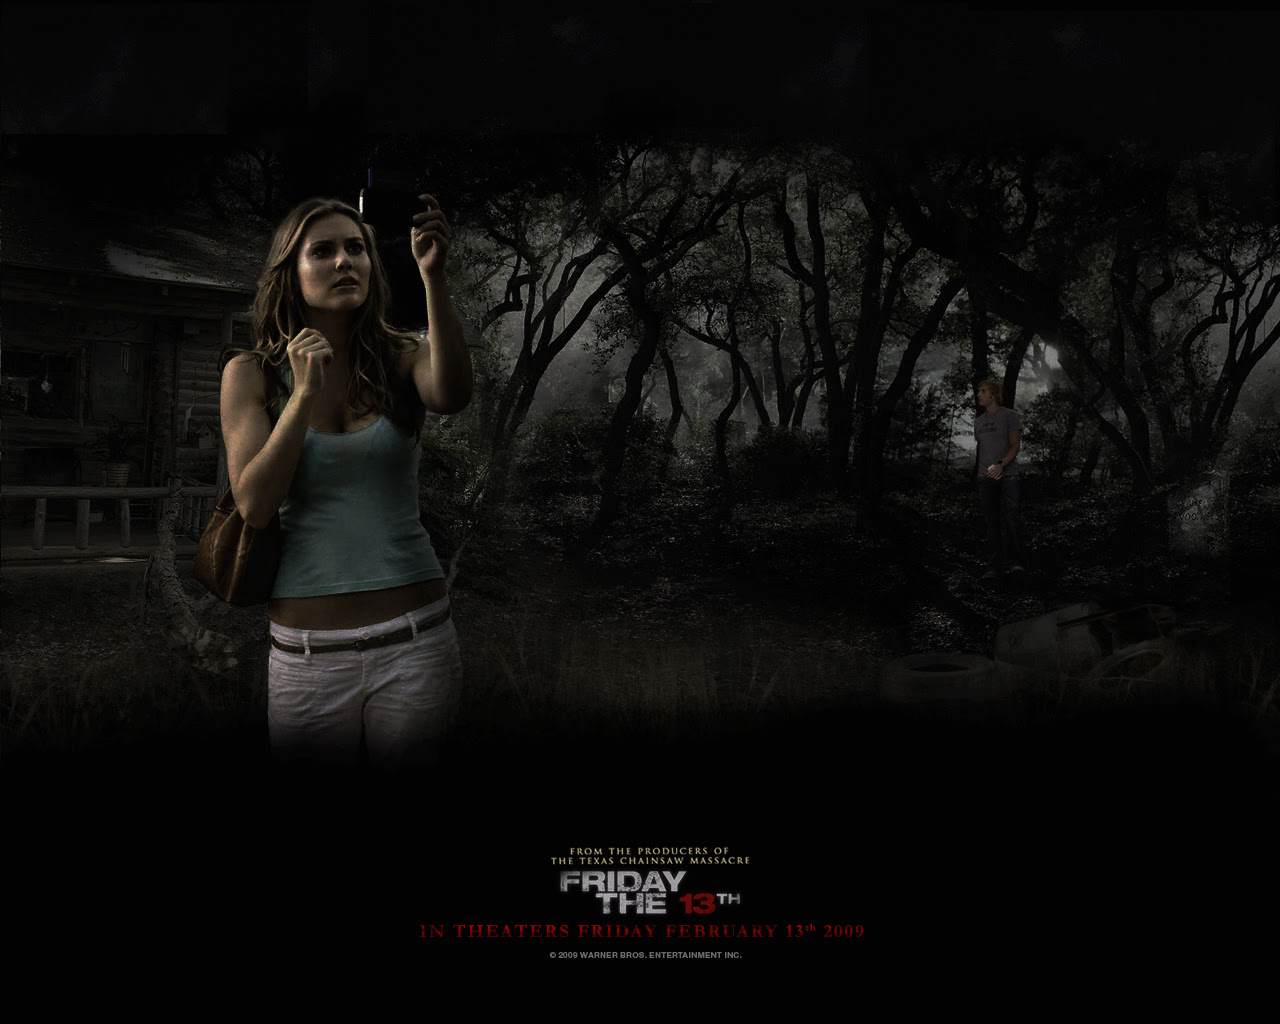 Friday The 13th Friday The 13th 2009 Wallpaper 3971568 Fanpop